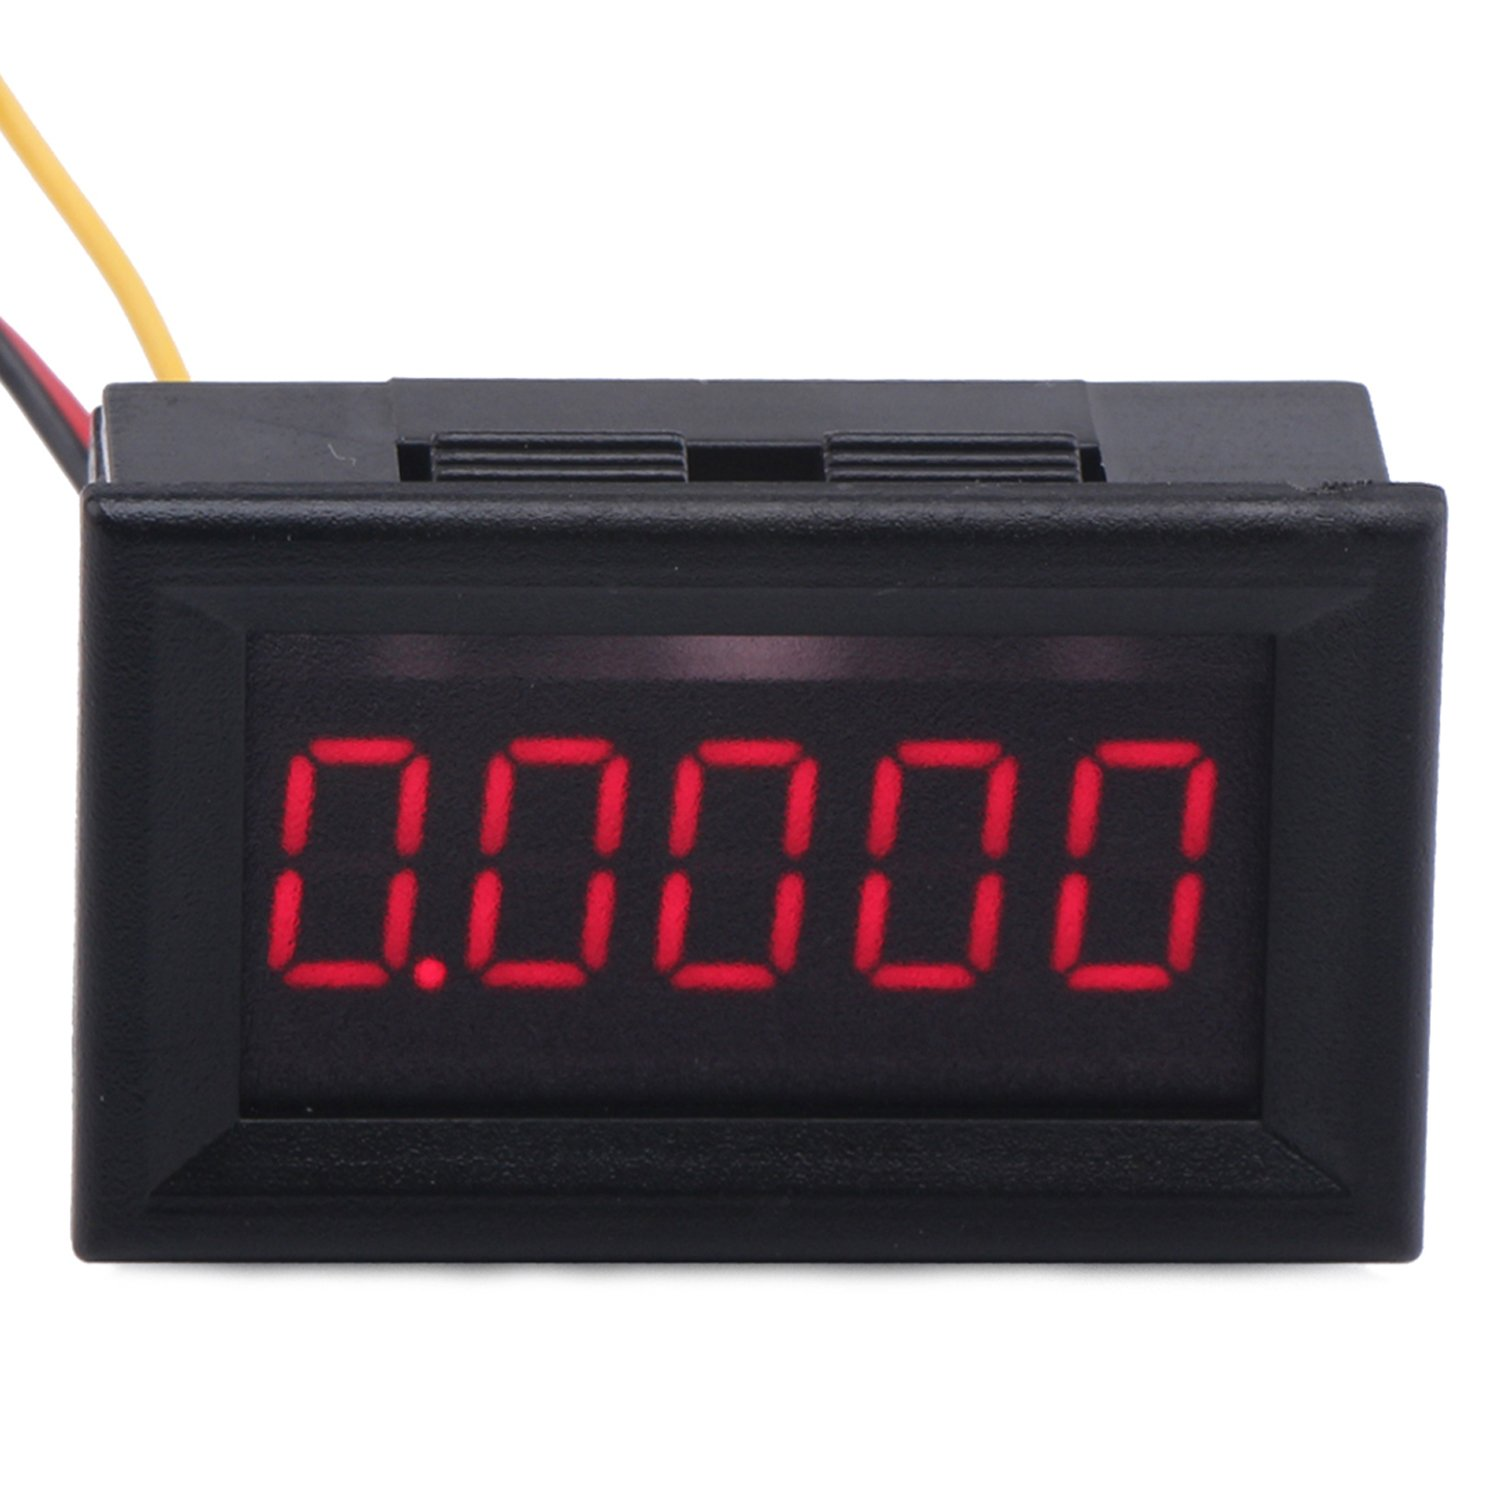 Drok 036 Led 5 Digit Dc0 33000v 12v 24v High Accuracy Voltmeter Digital Wiring Diagram Auto Car Battery Tester Volt Gauge Panel Meter With Red Display